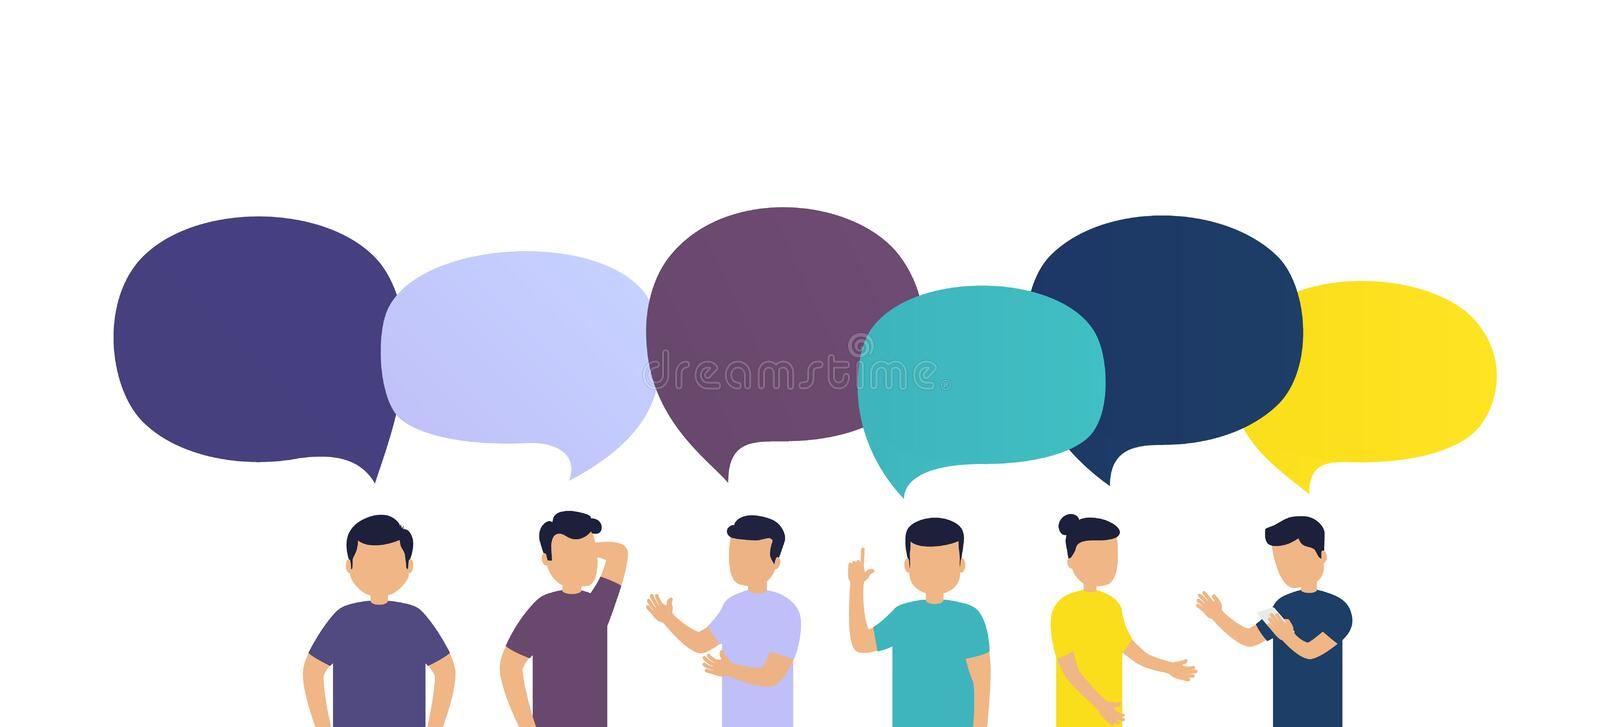 People discuss the news with each other. Exchange of messages or ideas, speech bubbles on white background. Illustration stock illustration